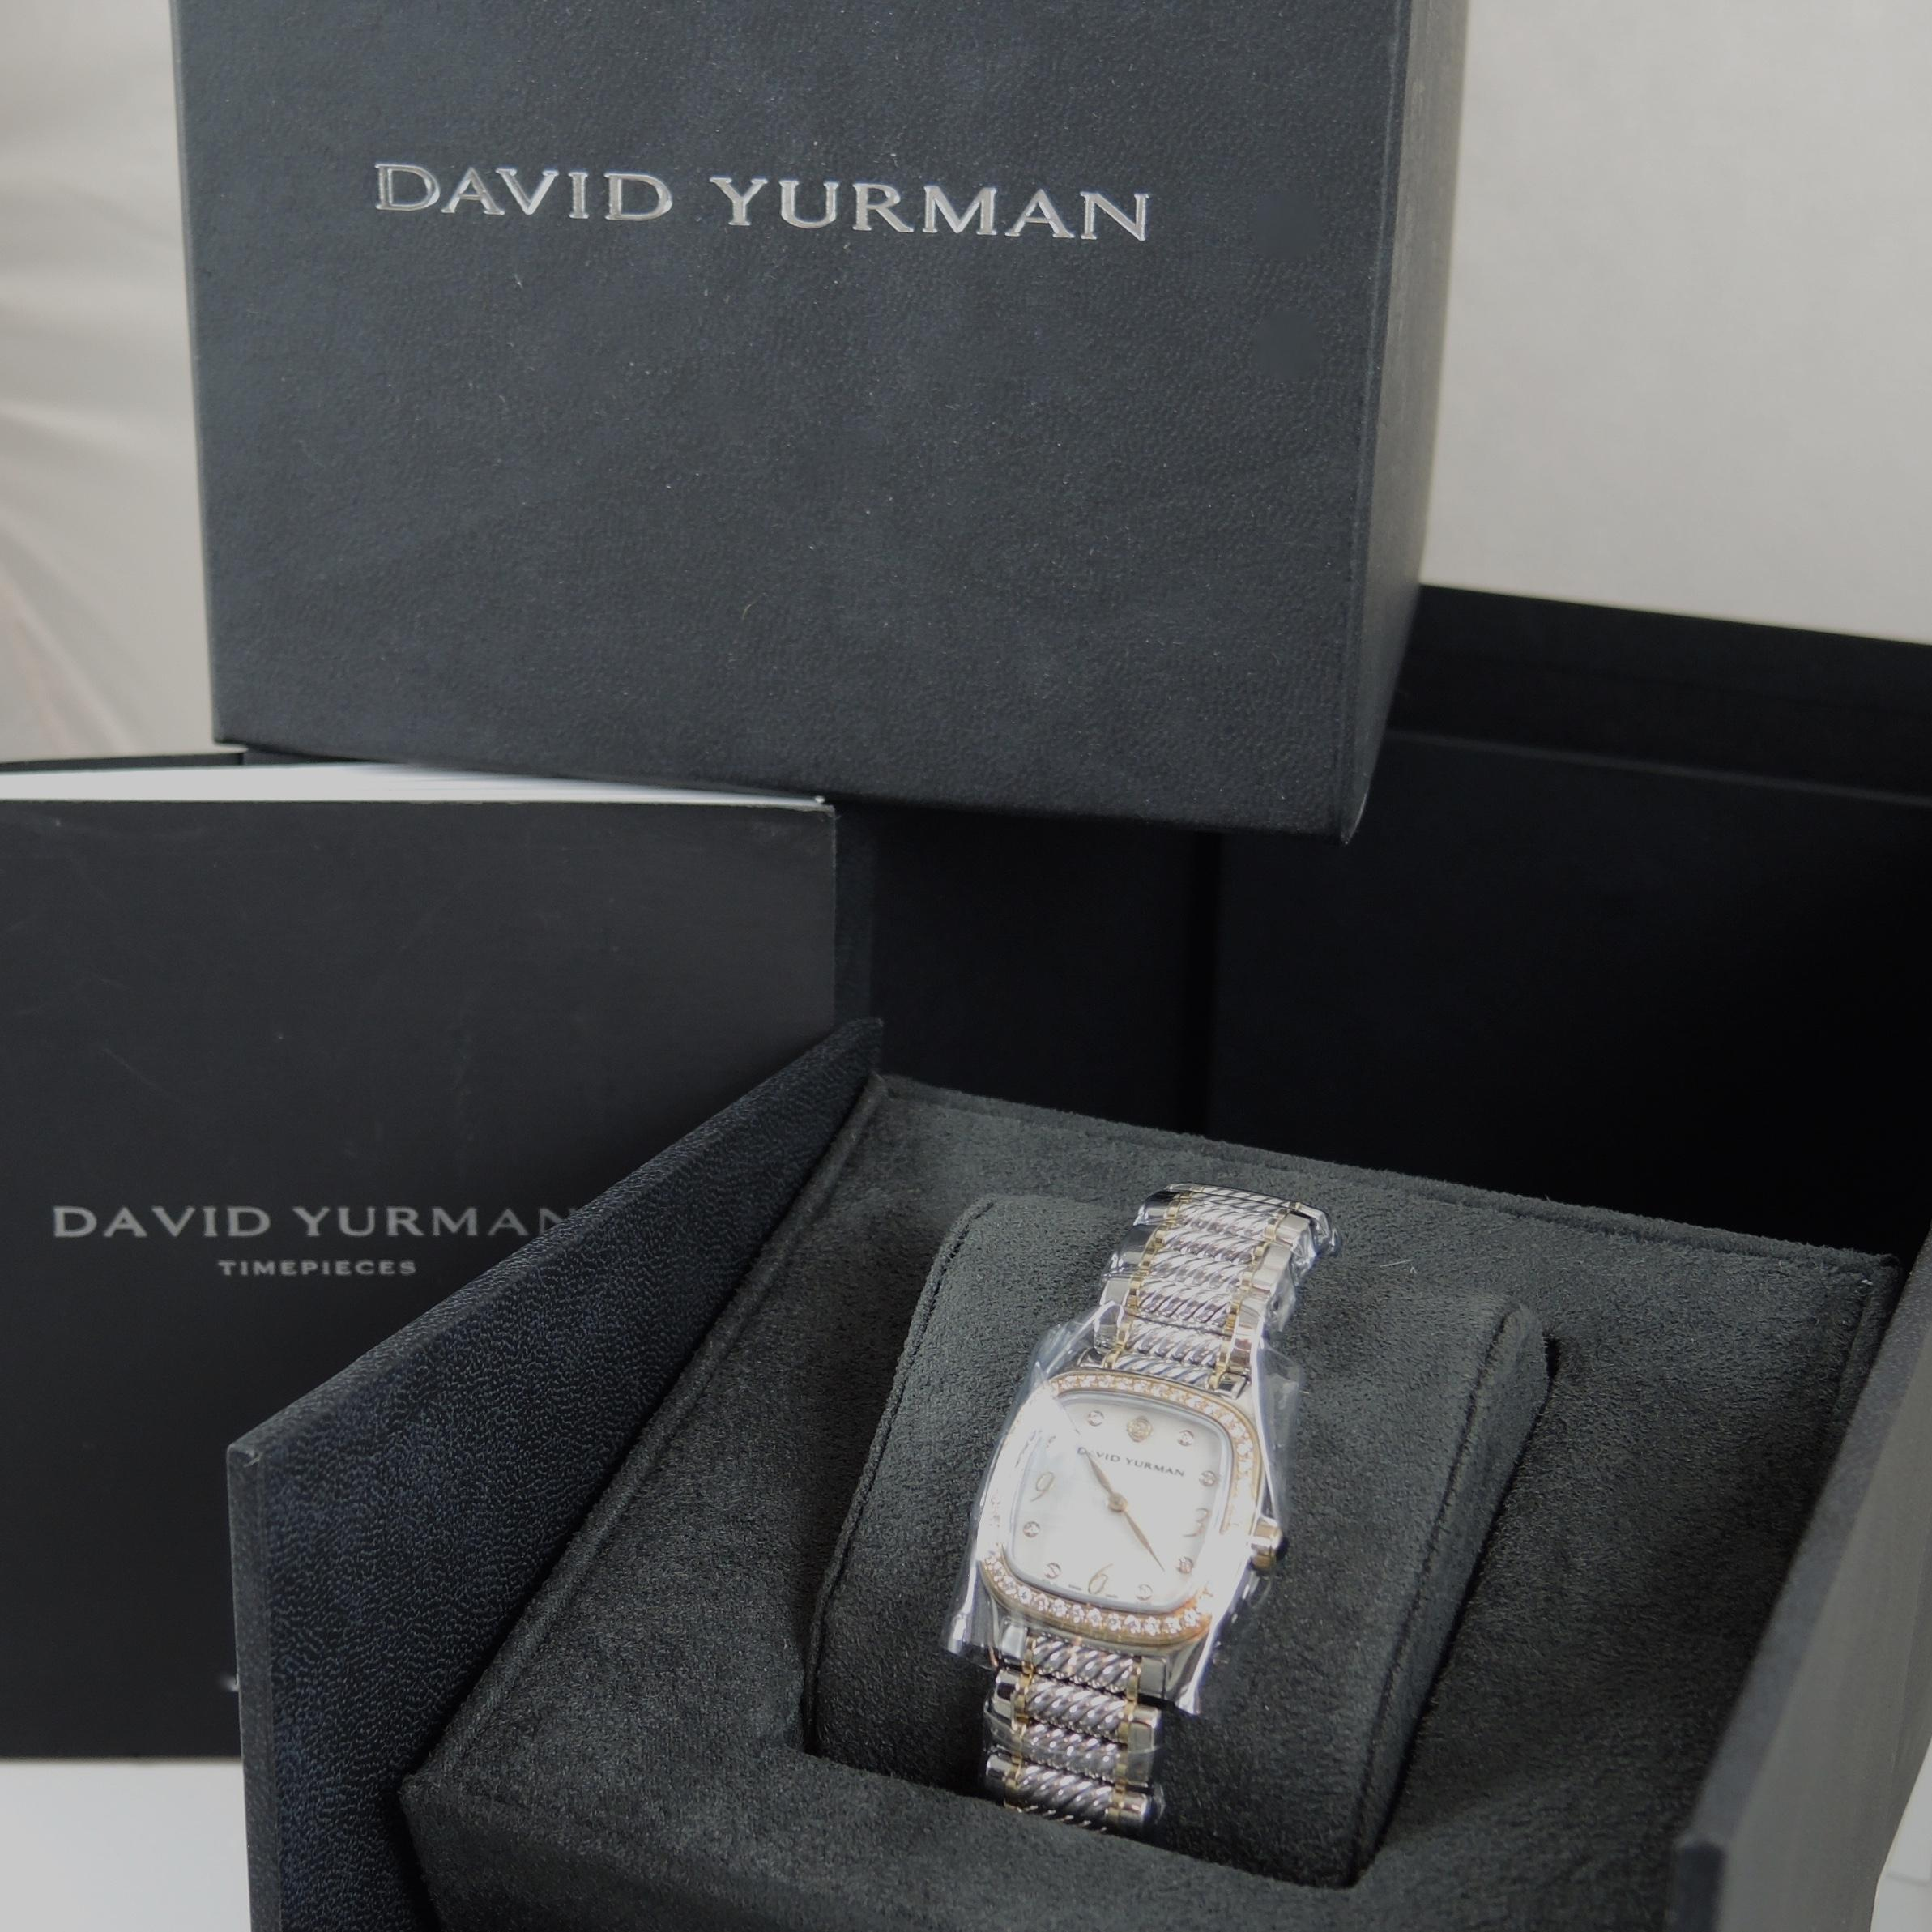 david yurman david yurman 54tcw 25mm stainless steel and 18k yellow gold mother of